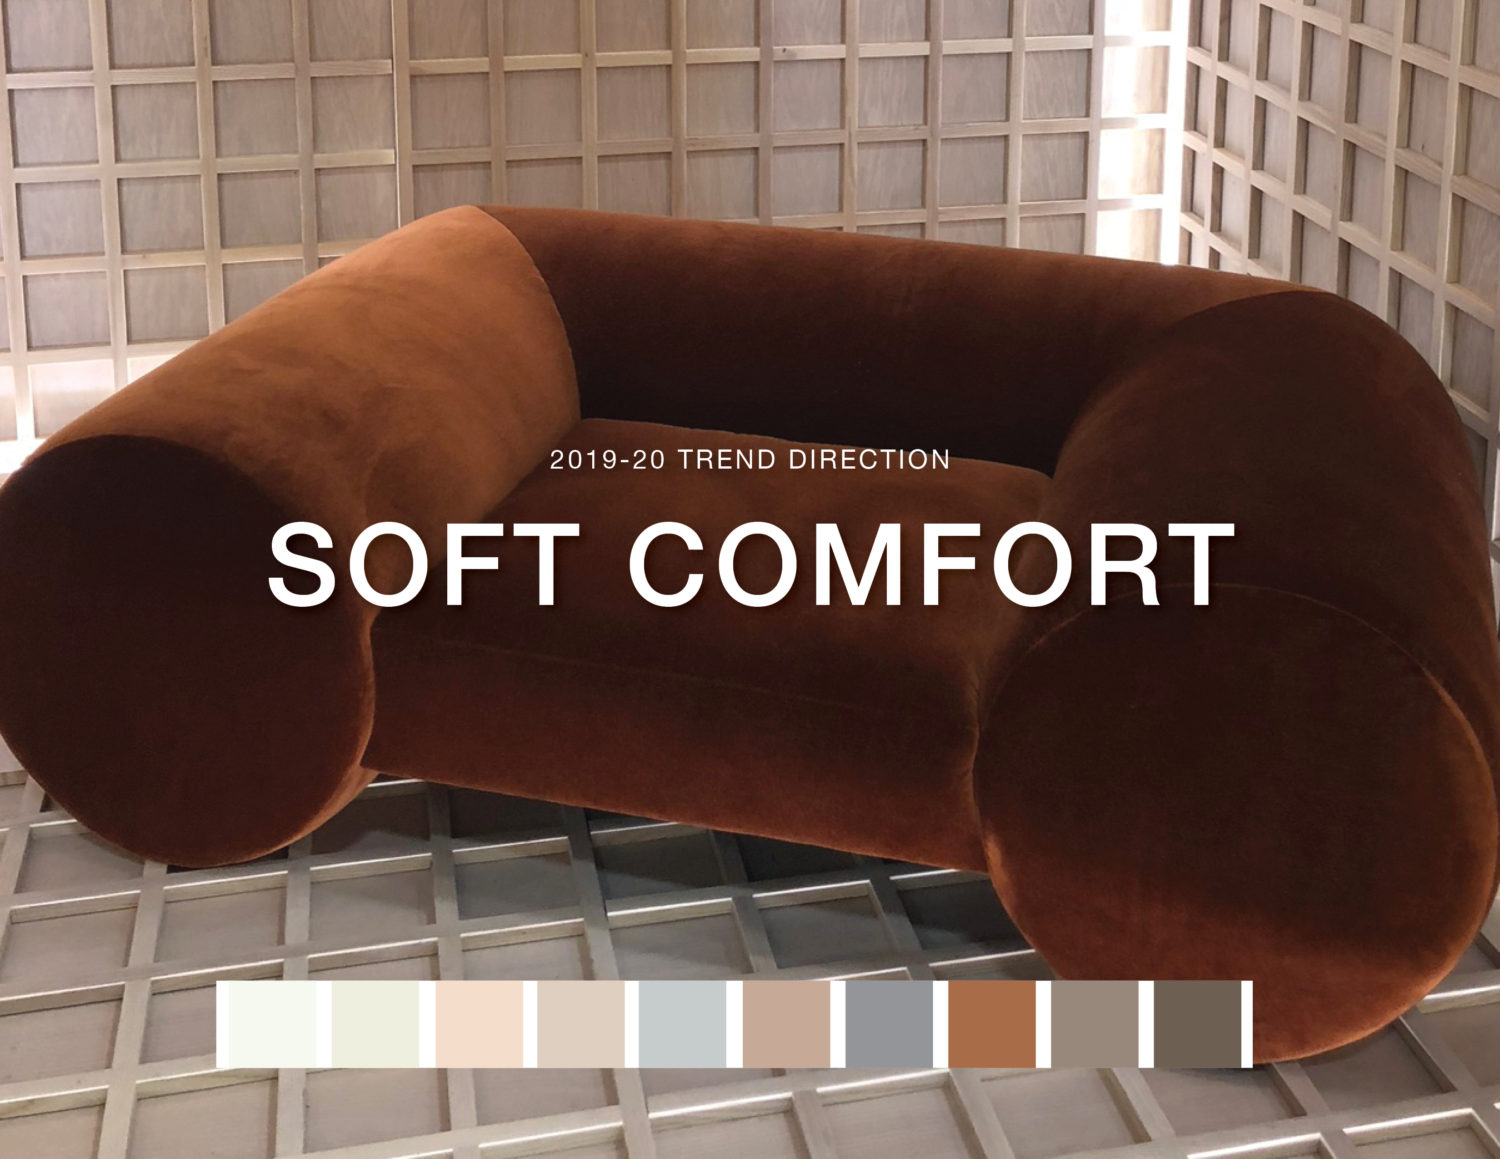 Wellness Trend: Soft Comfort